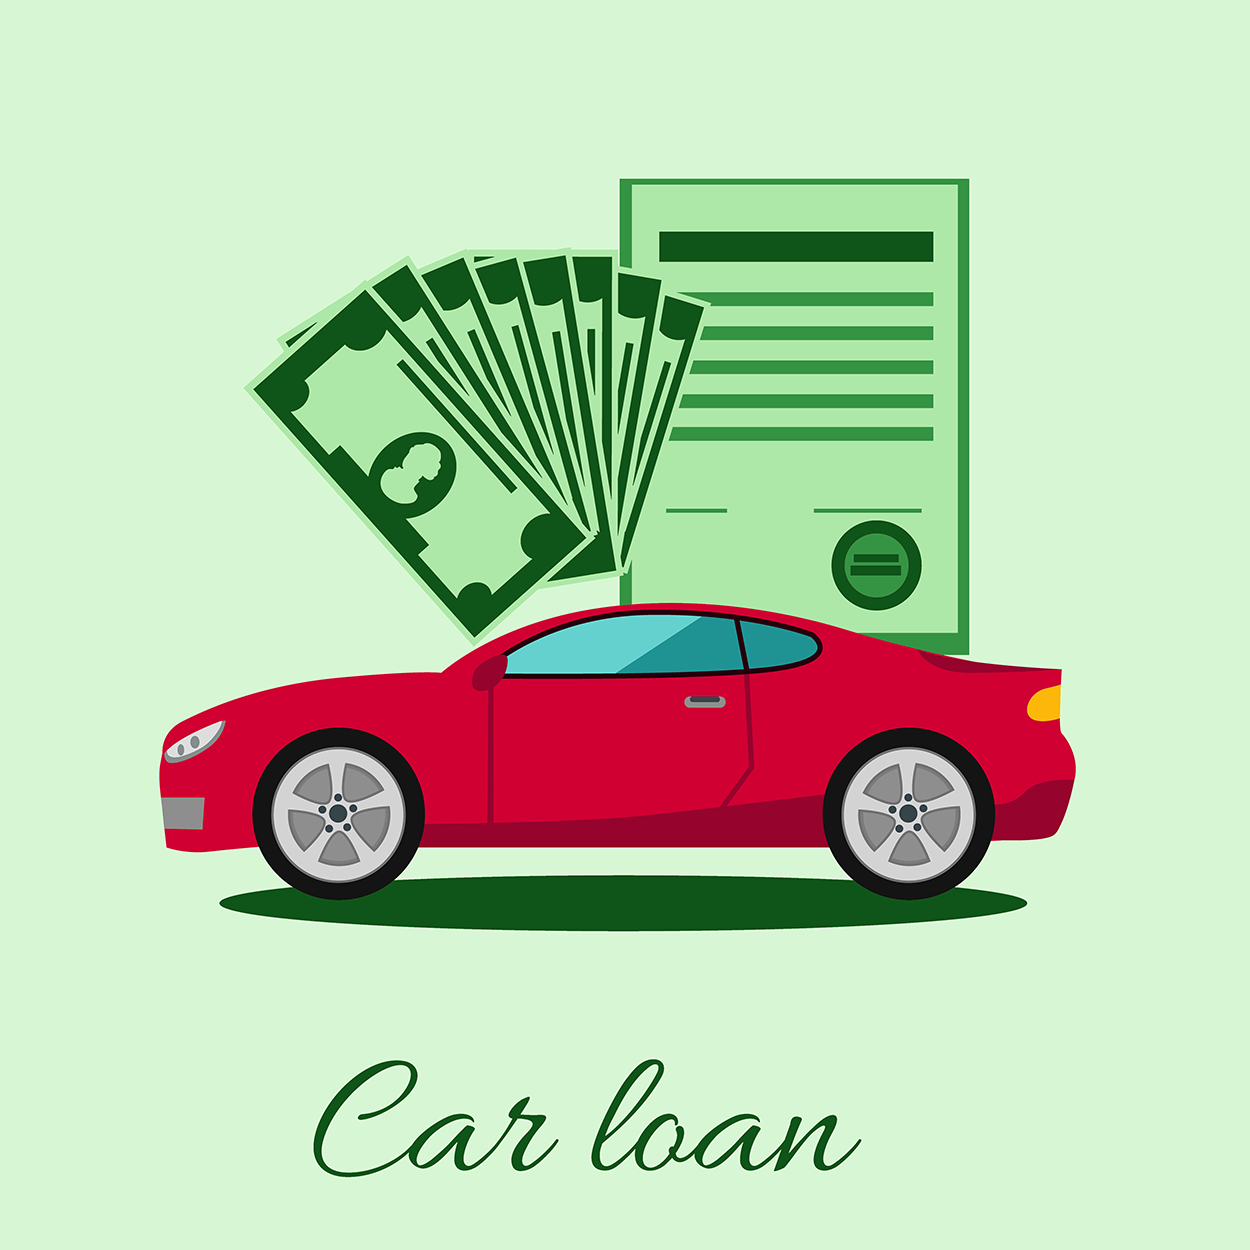 120 Month Auto Loan >> Auto Loan Calculator Estimate Monthly Car Payments Online For Free